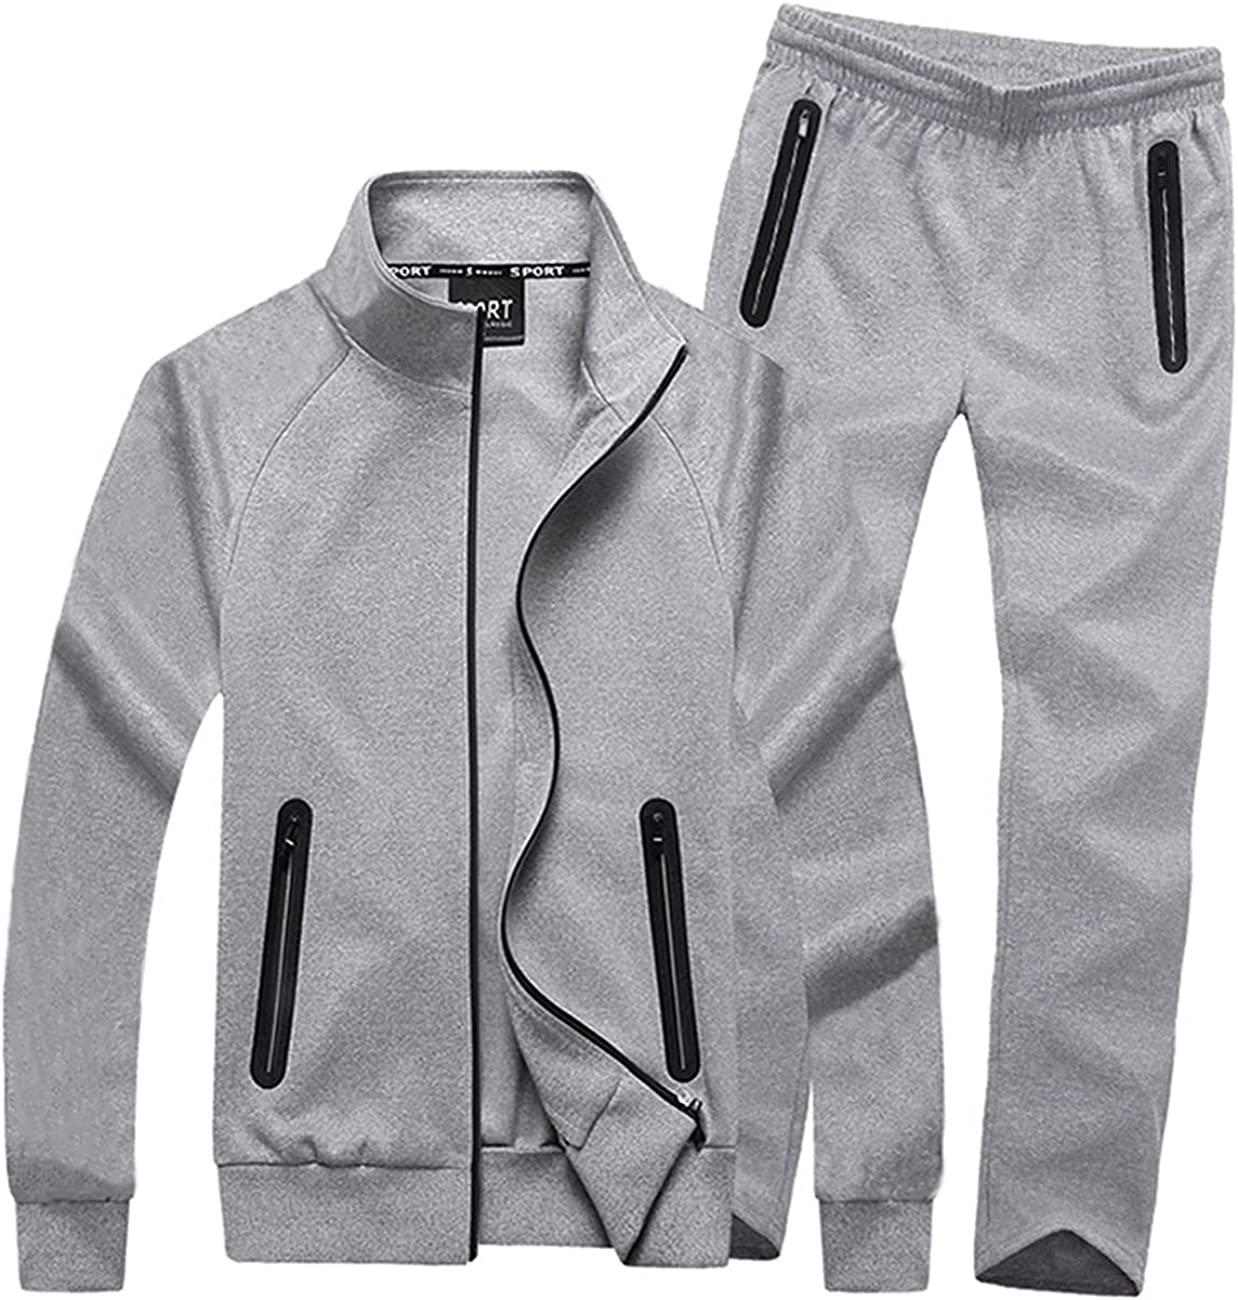 Soldering Men's Athletic Tracksuit Set Full Zip Jogging Gym Sports Miami Mall Casual